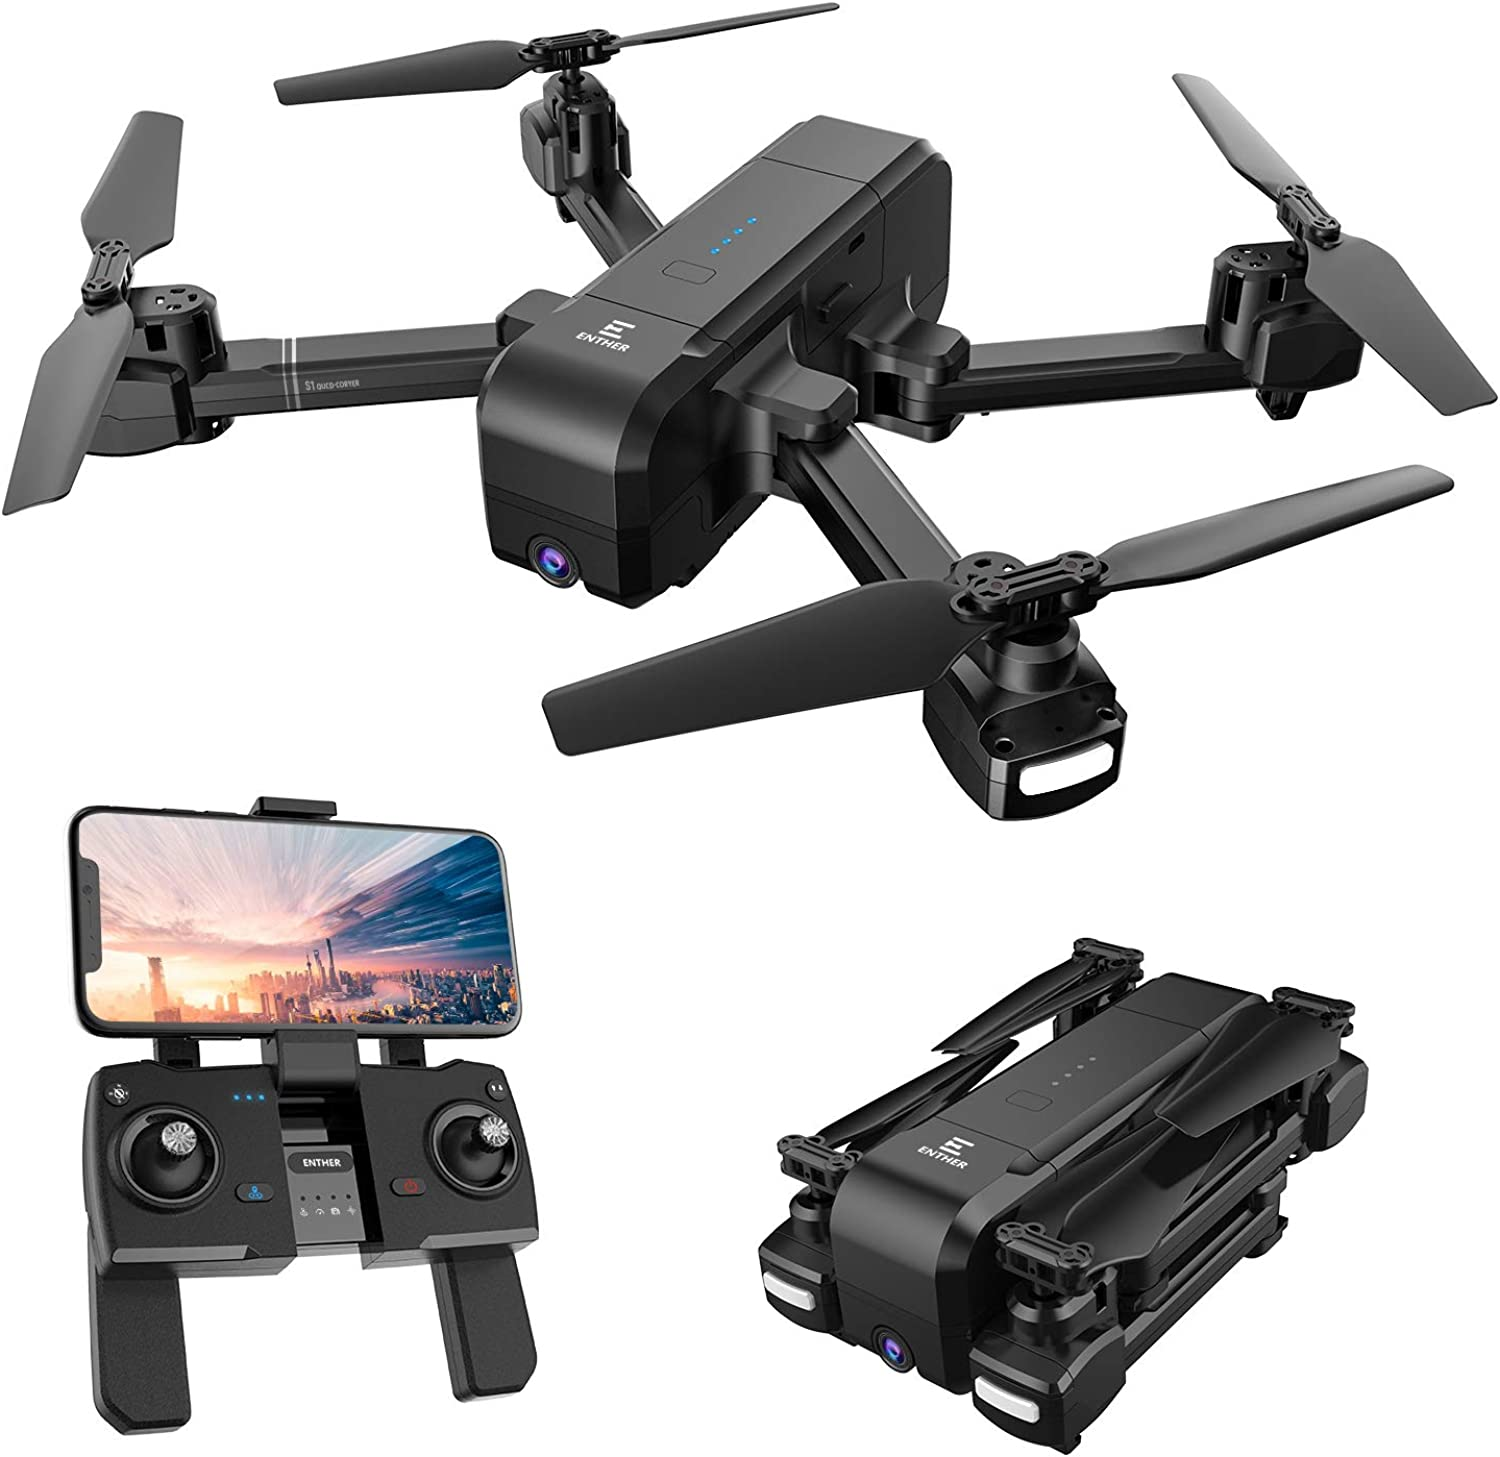 Enther GPS 5G FPV Drone with 1080P FHD Camera Live Video, Foldable Folding Selfie RC Quadcopter with Altitude Hold, GPS Return Home, Follow Me, and Bonus Battery for Beginners, Kids, and Adults